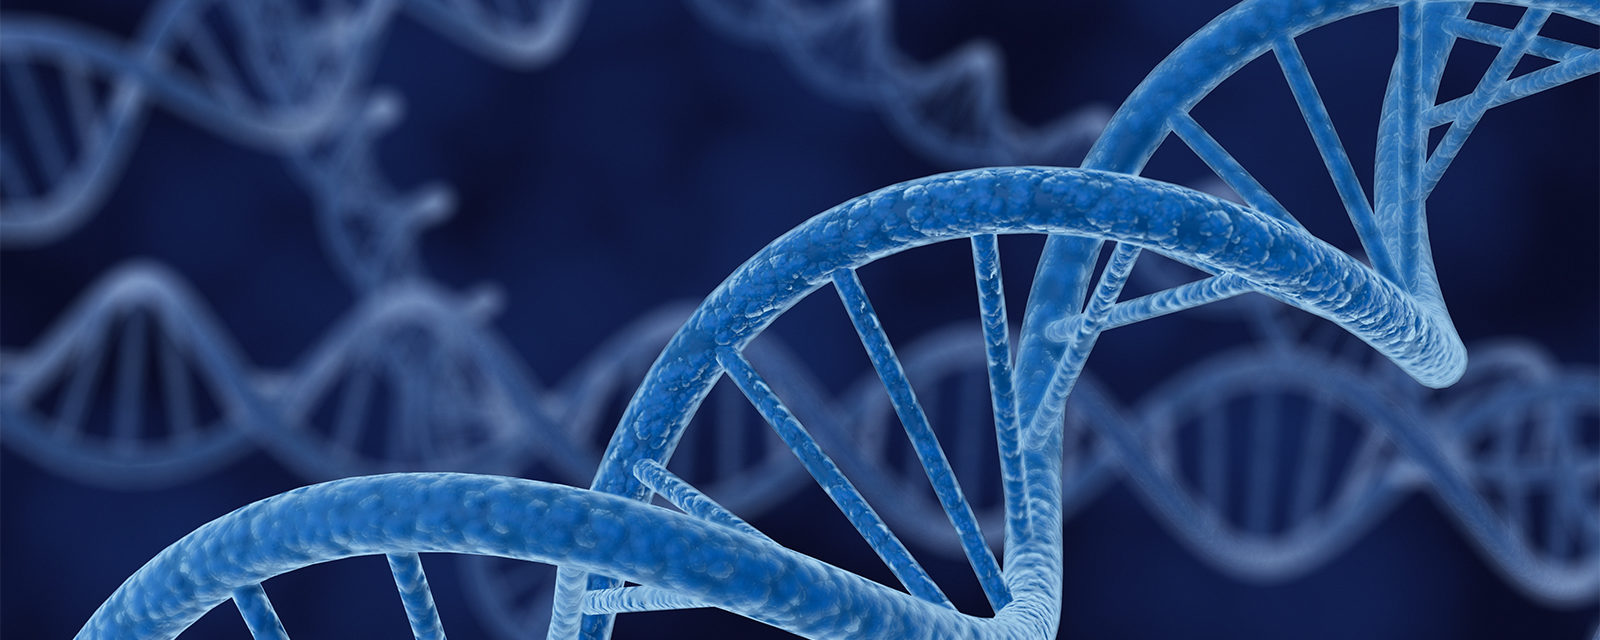 Omics Research: Its Role in the Future of Rheumatology